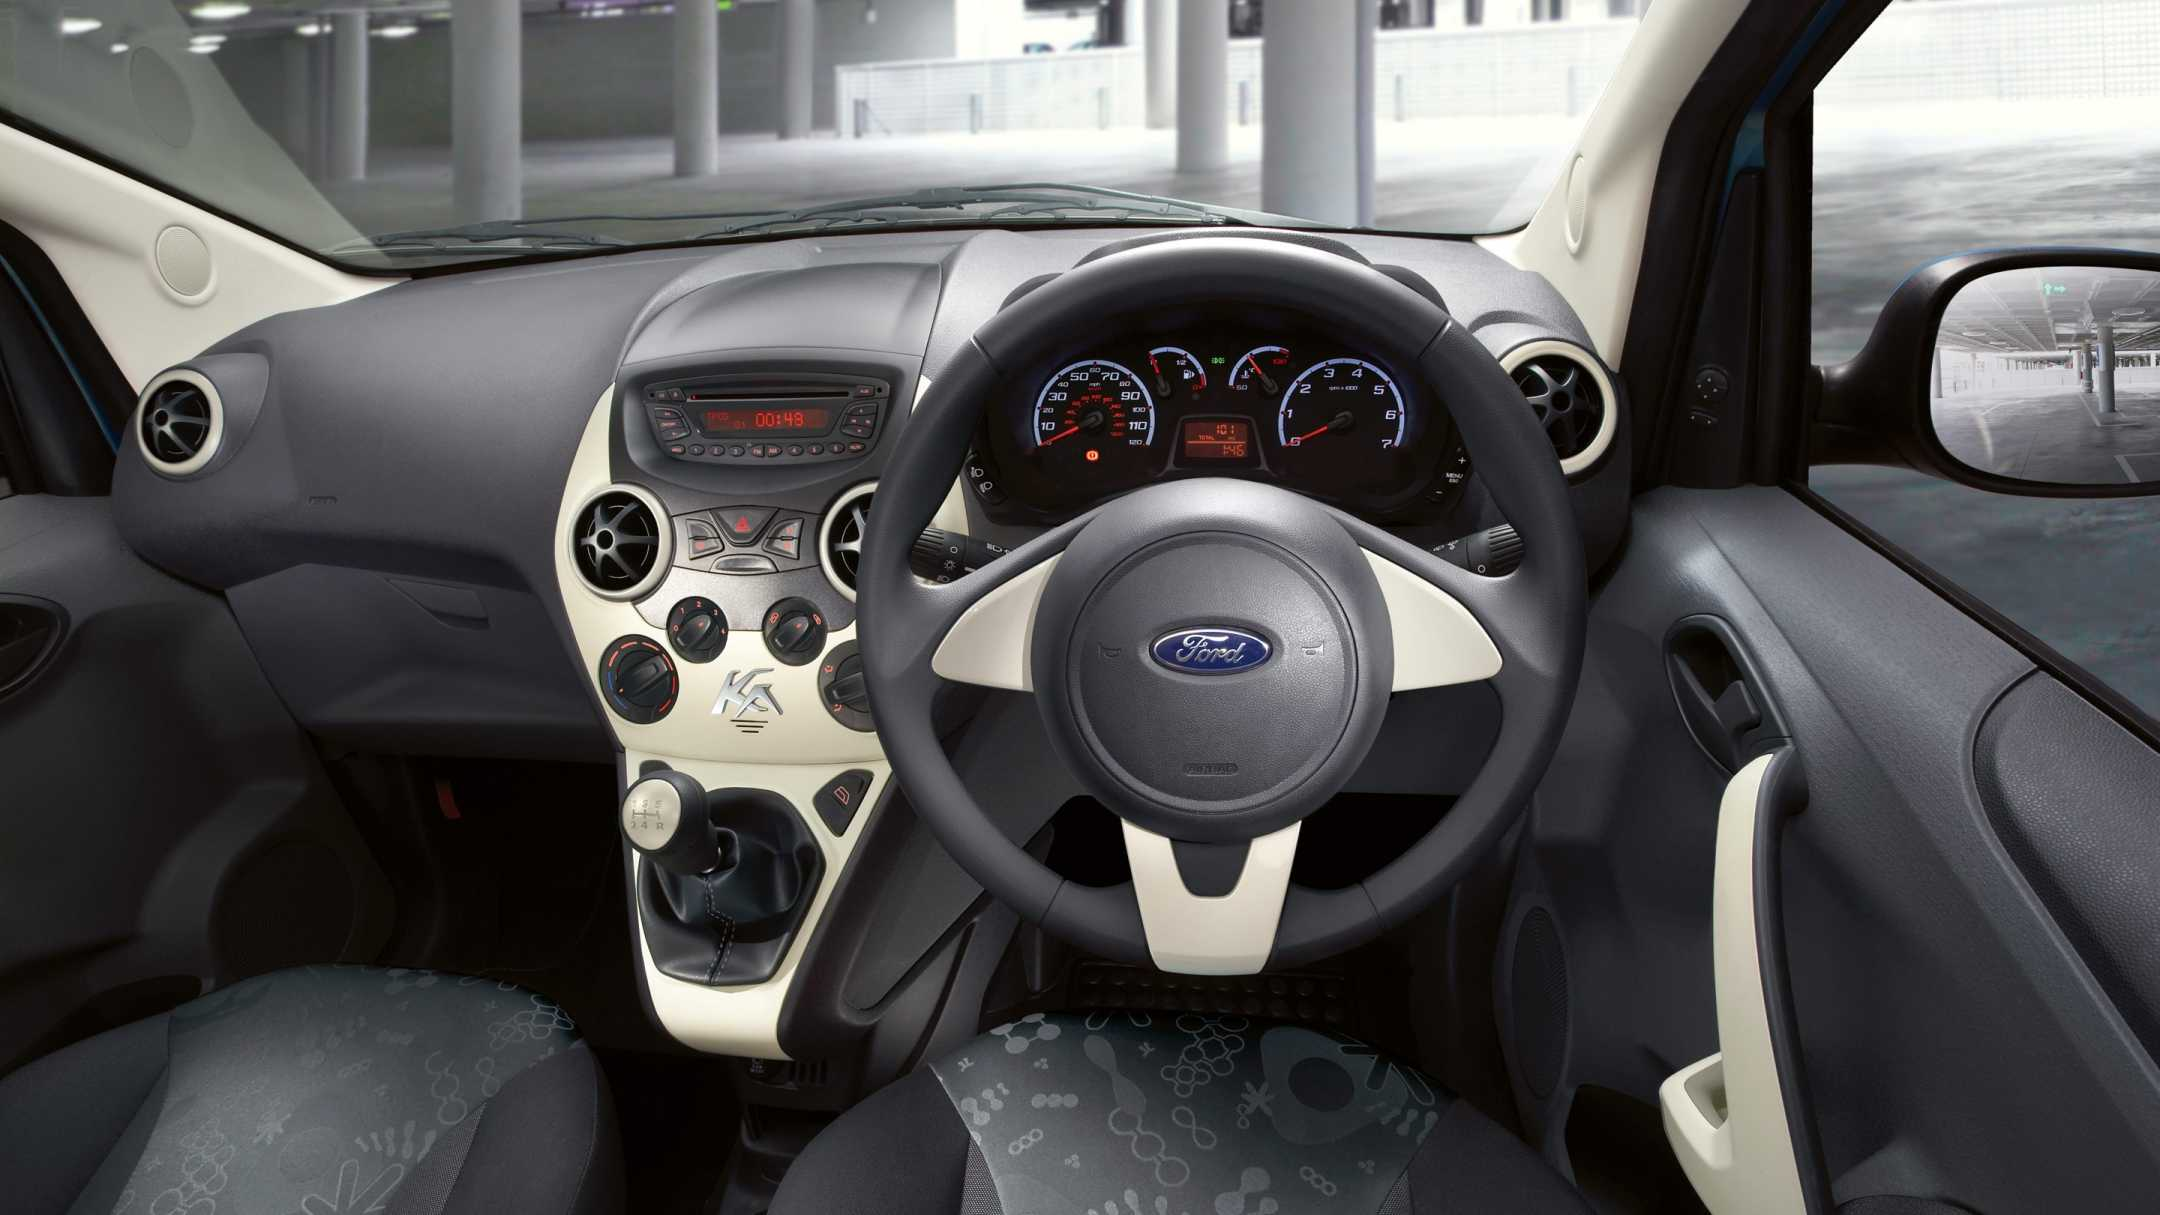 Ford ka review 2011 unique small car ebest cars - Interior ford ka ...